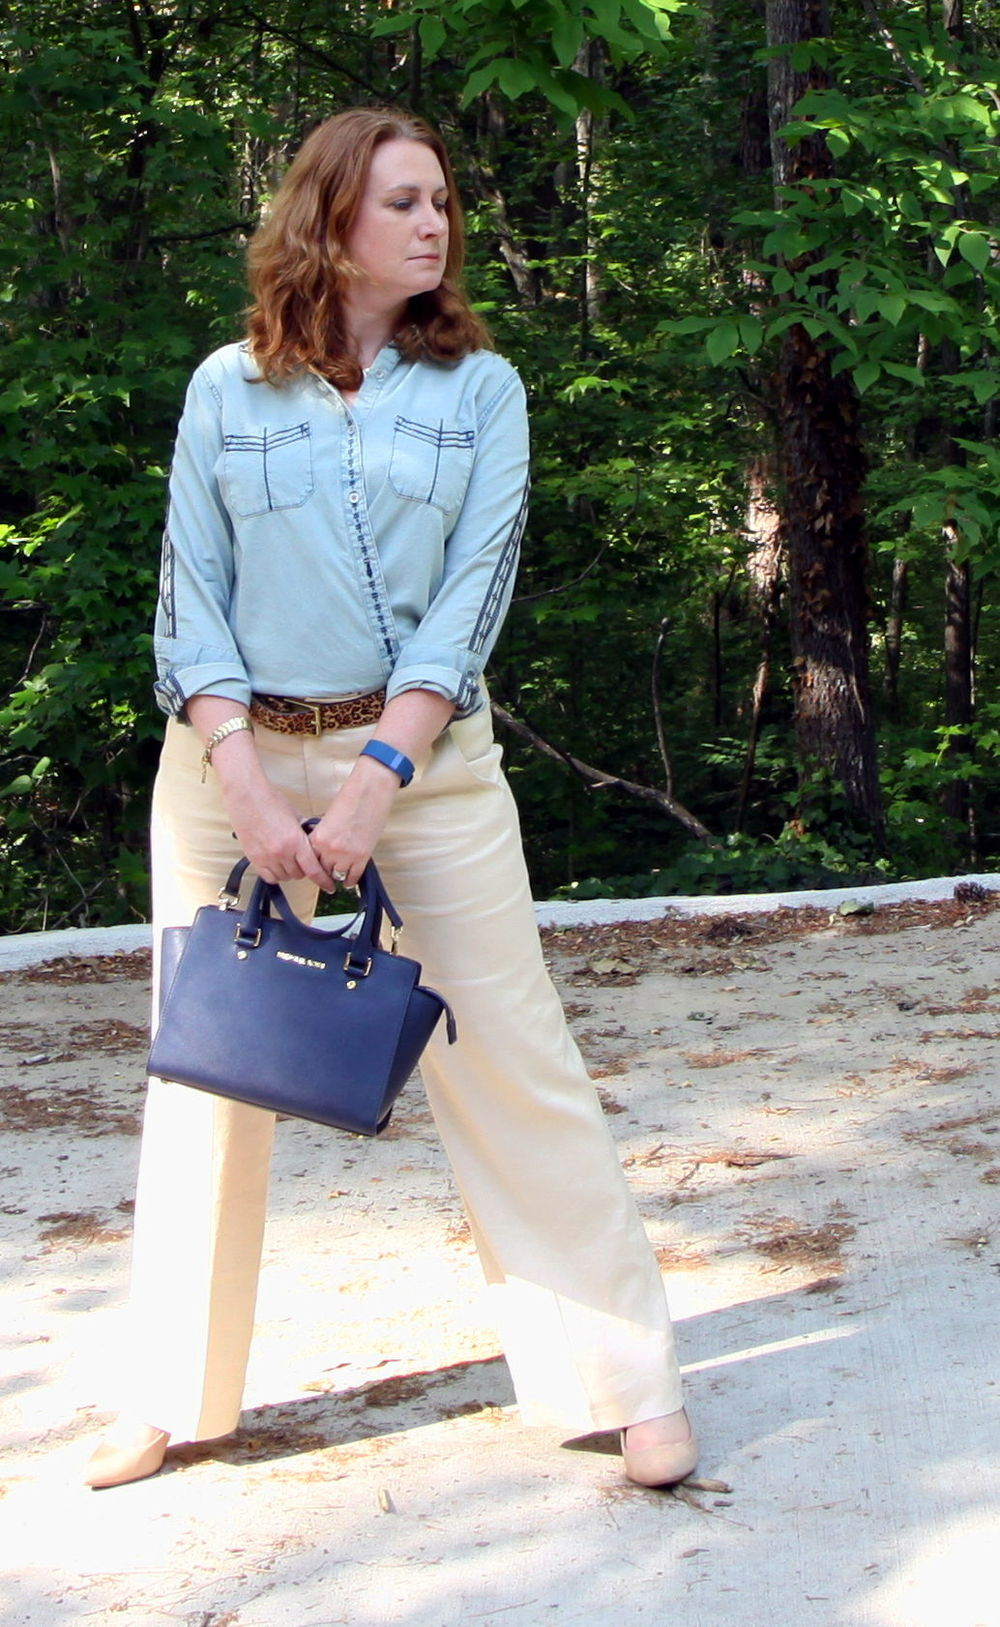 2.  Bardot POW: Working It Wrapped, Classy Linen & Denim Wednesday